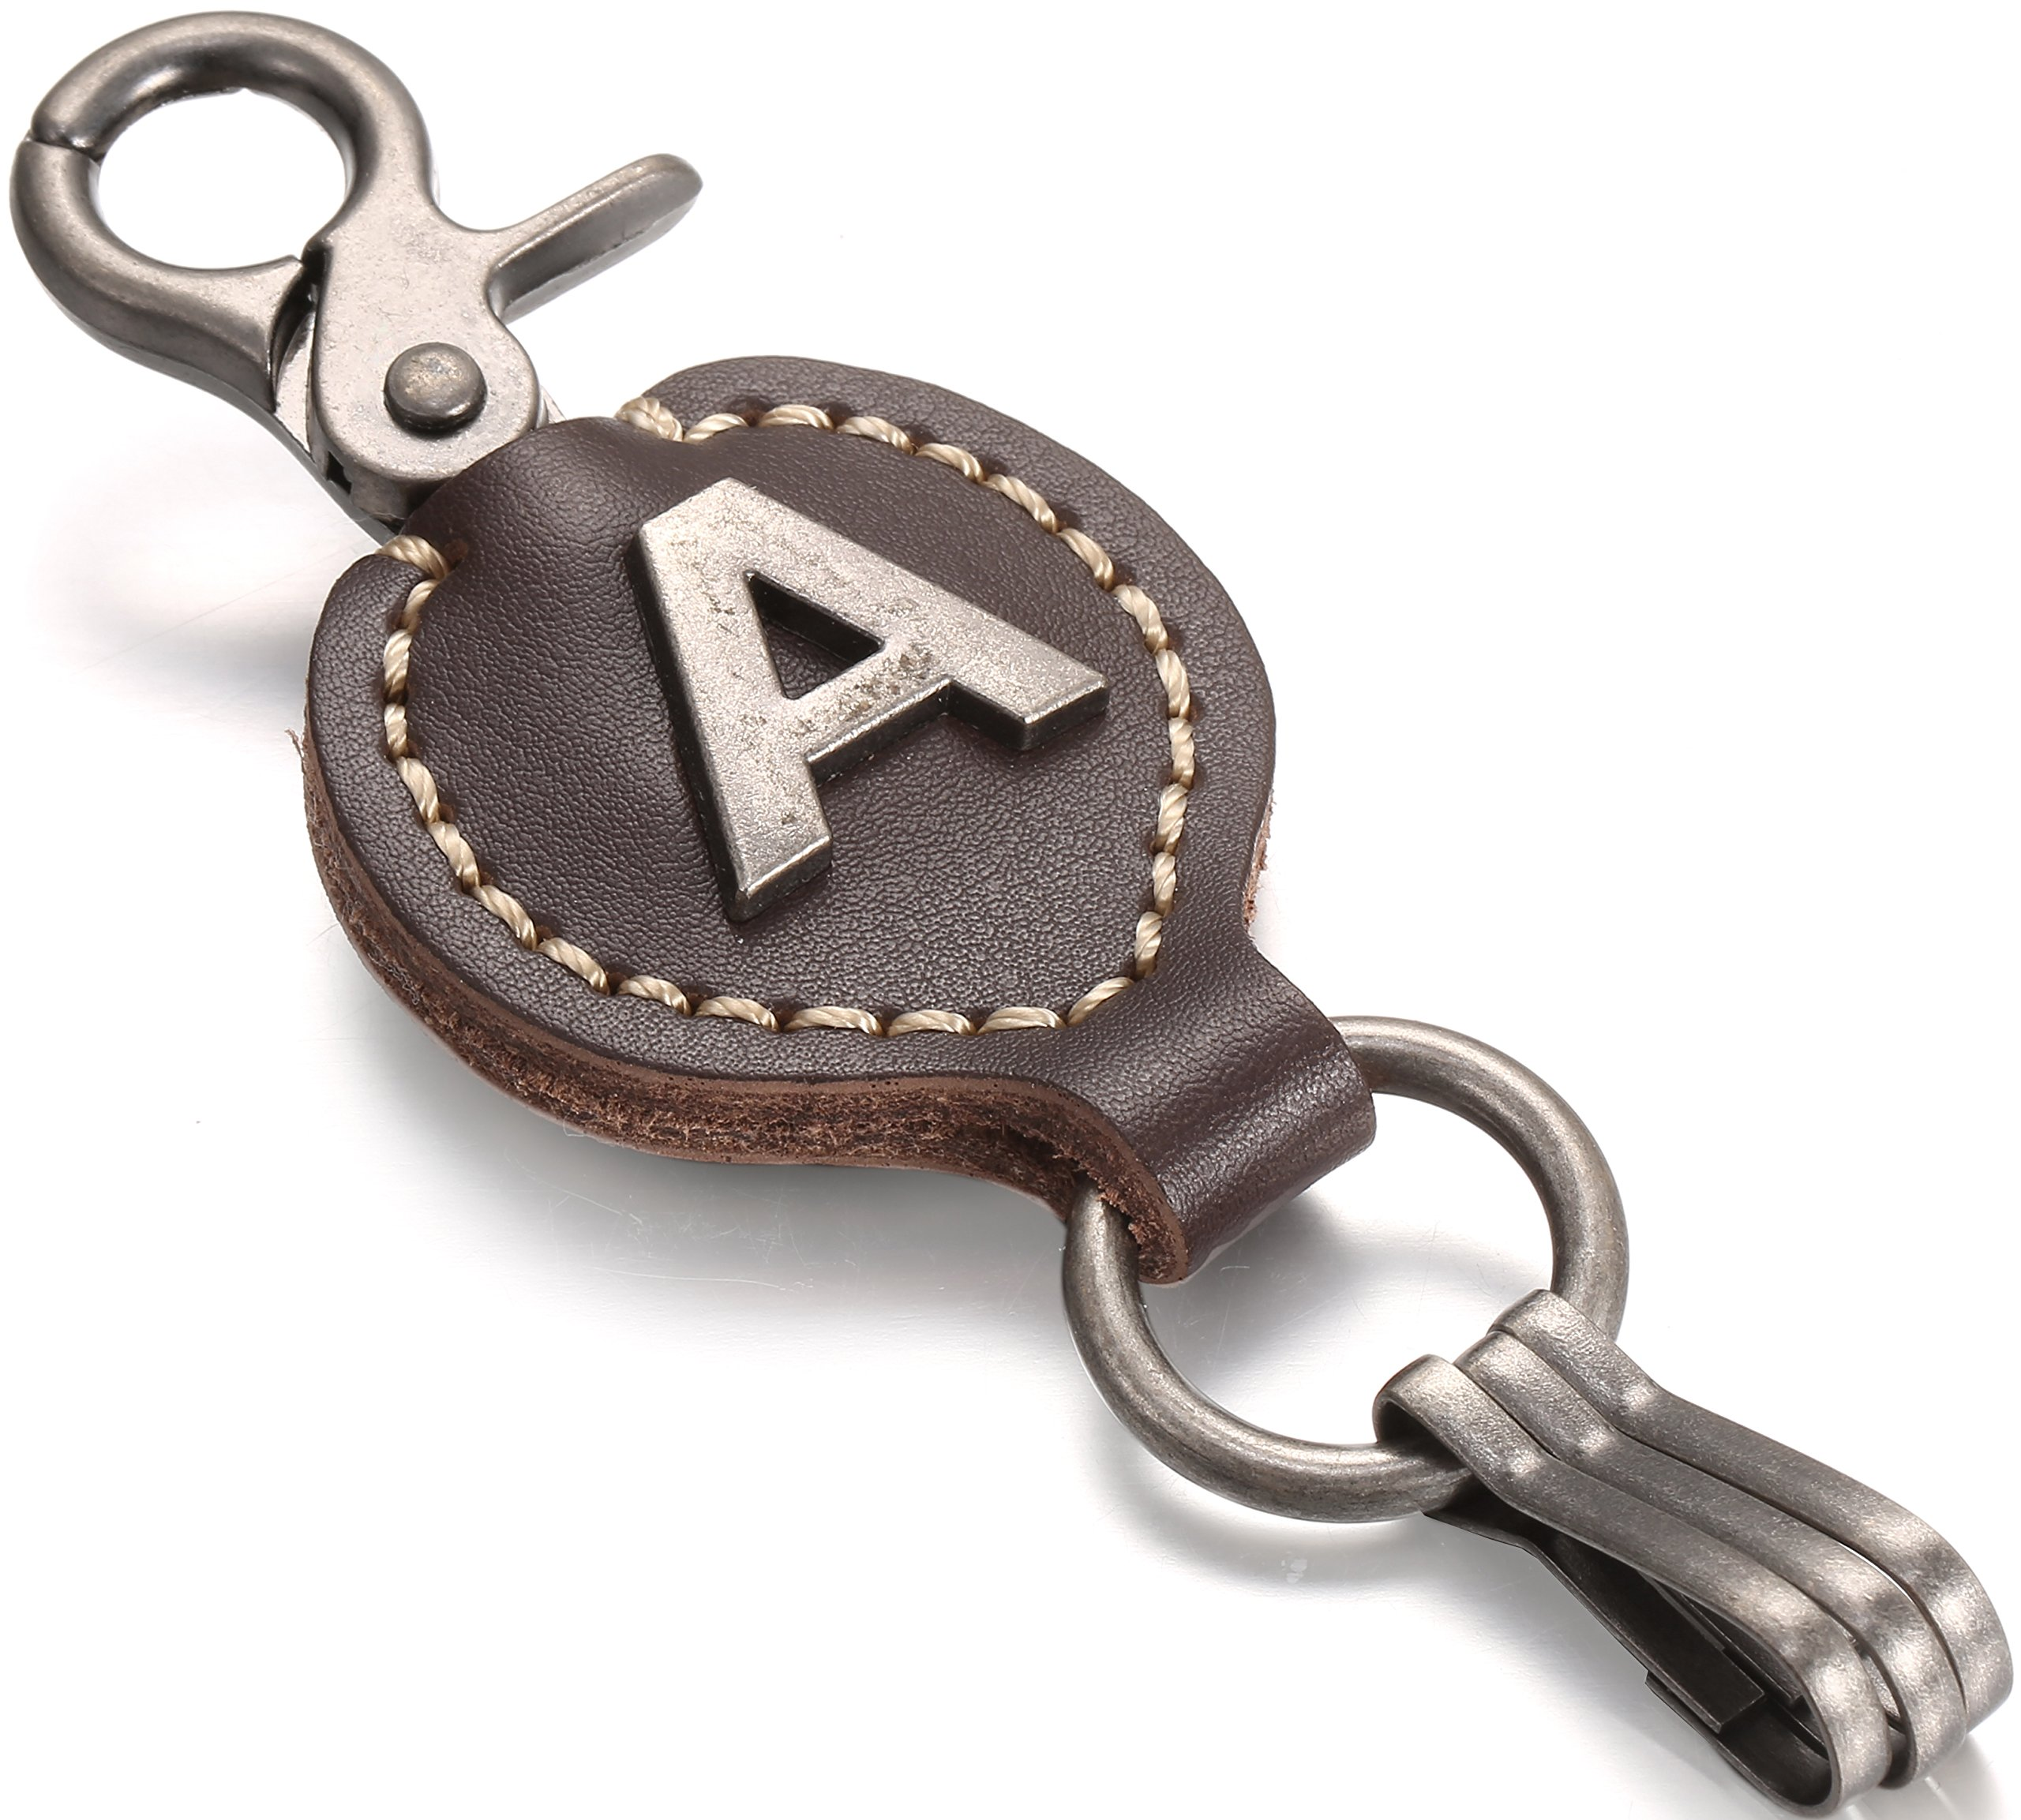 Mens Women Personalized Initial Monogram Letter Leather Key Fob Keychain BrownBeans BBKC11000 W